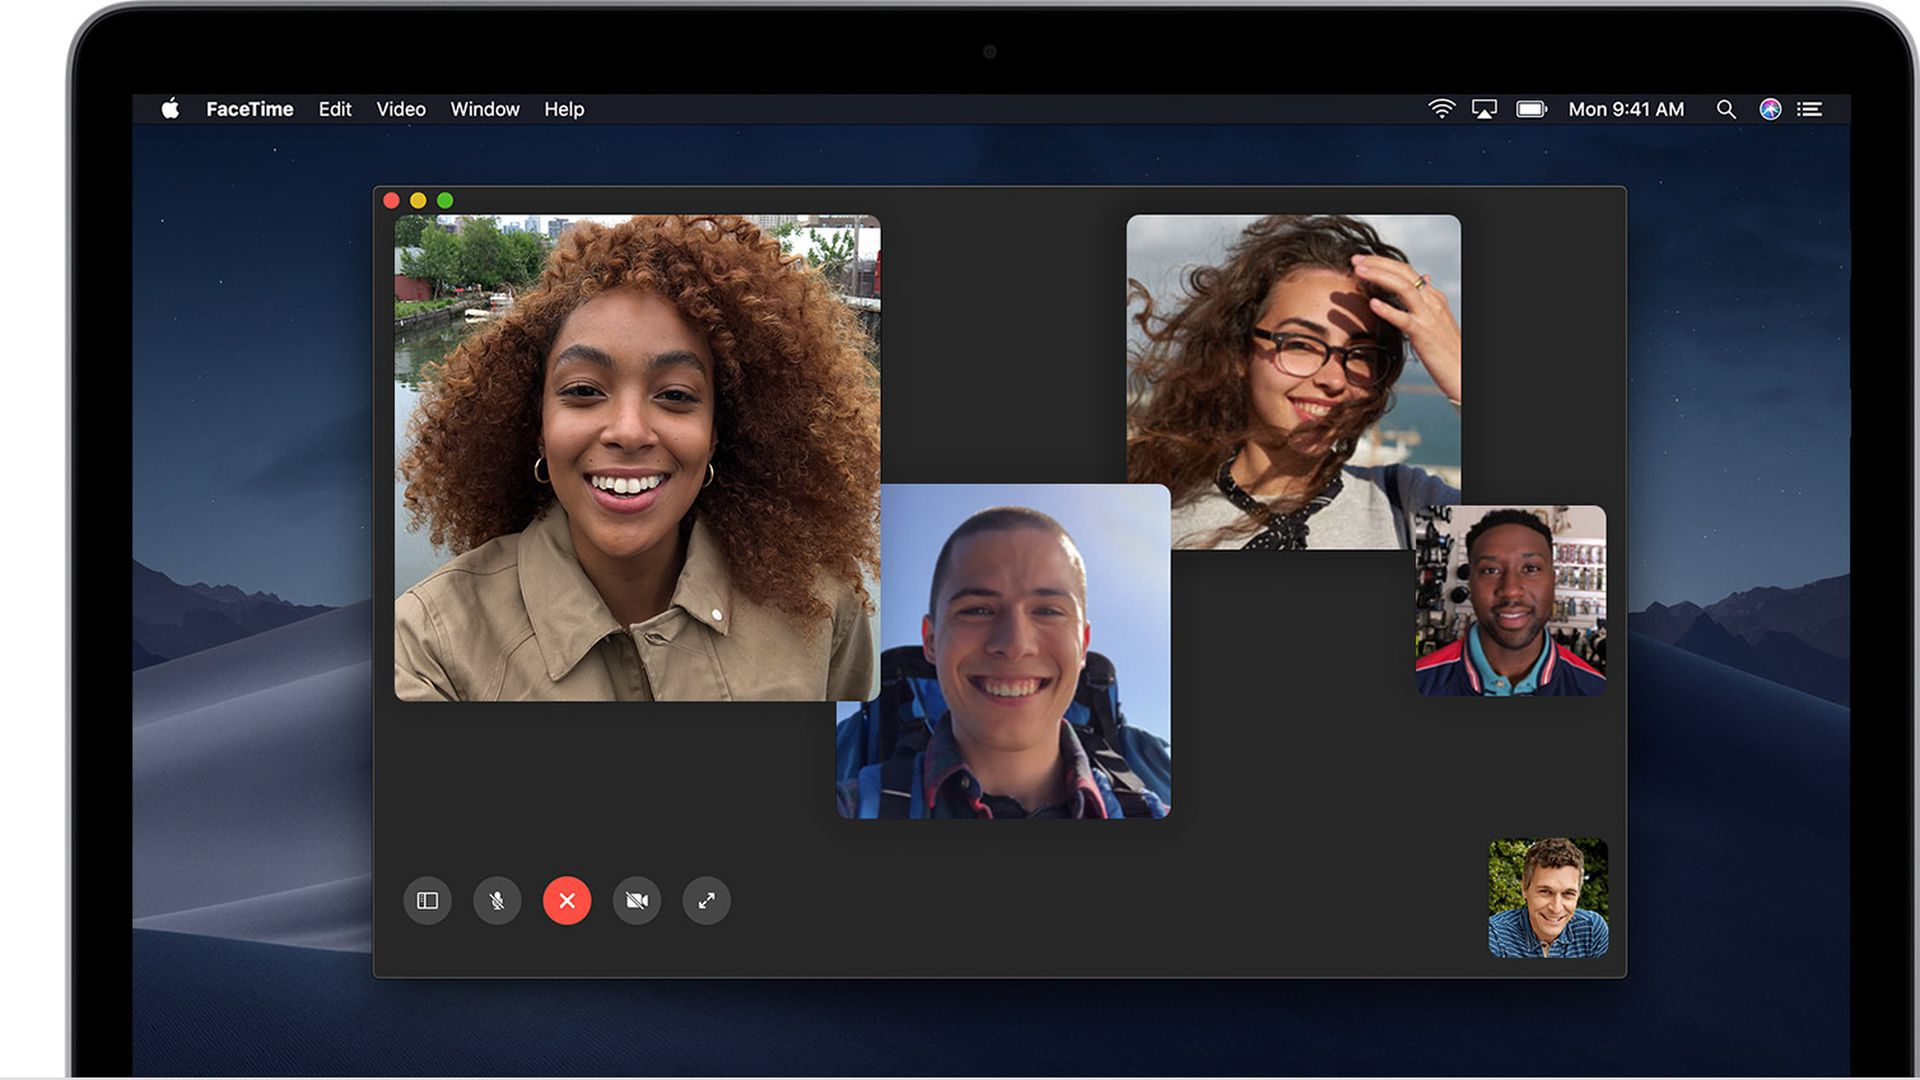 Apple's FaceTime chat app, as seen on a Mac.